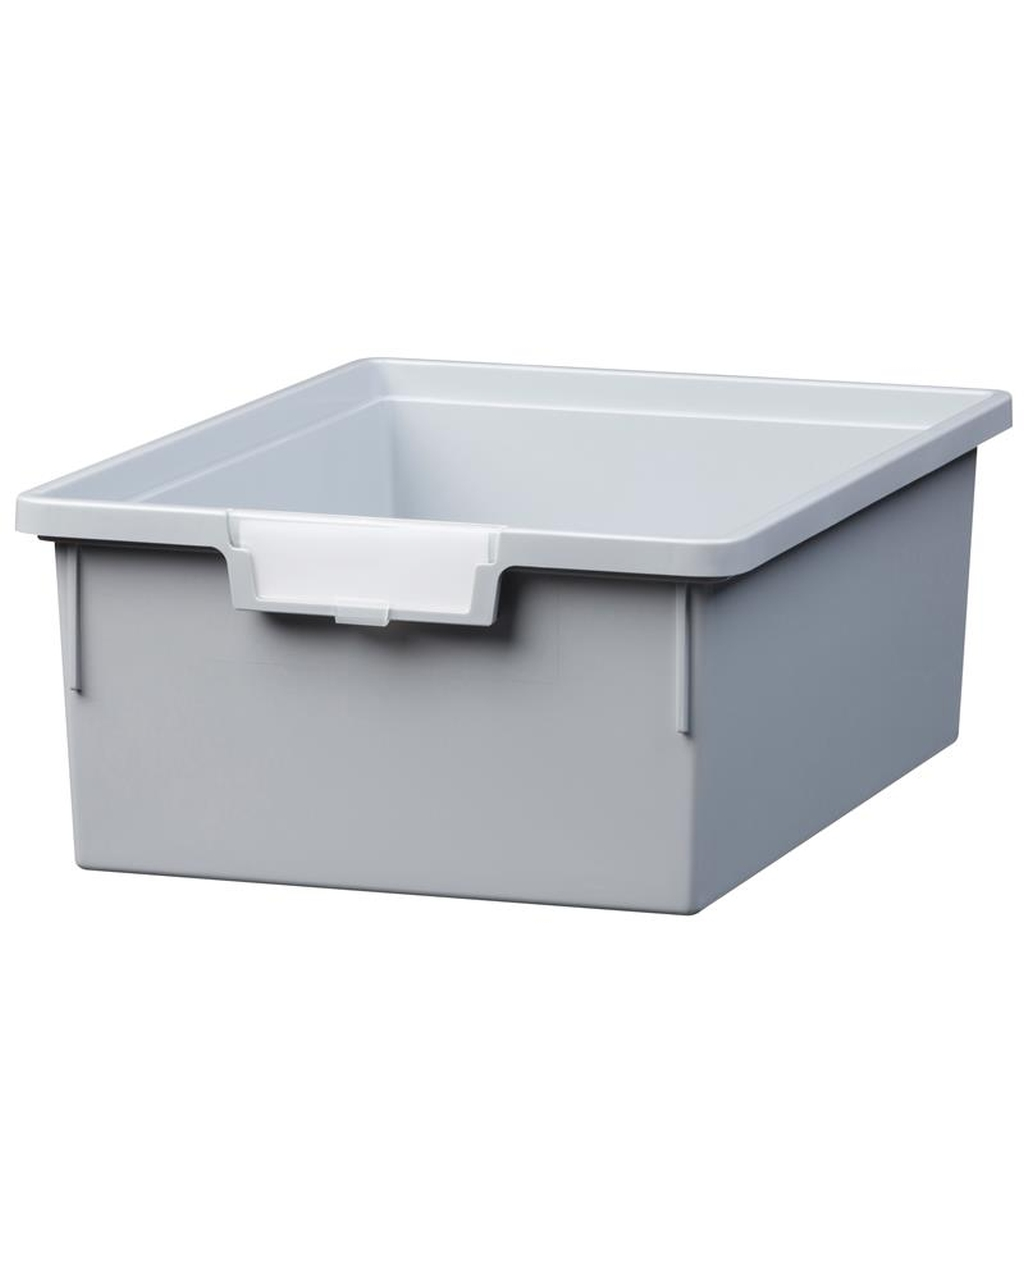 Shatterproof Double Depth Tray - Cool Grey